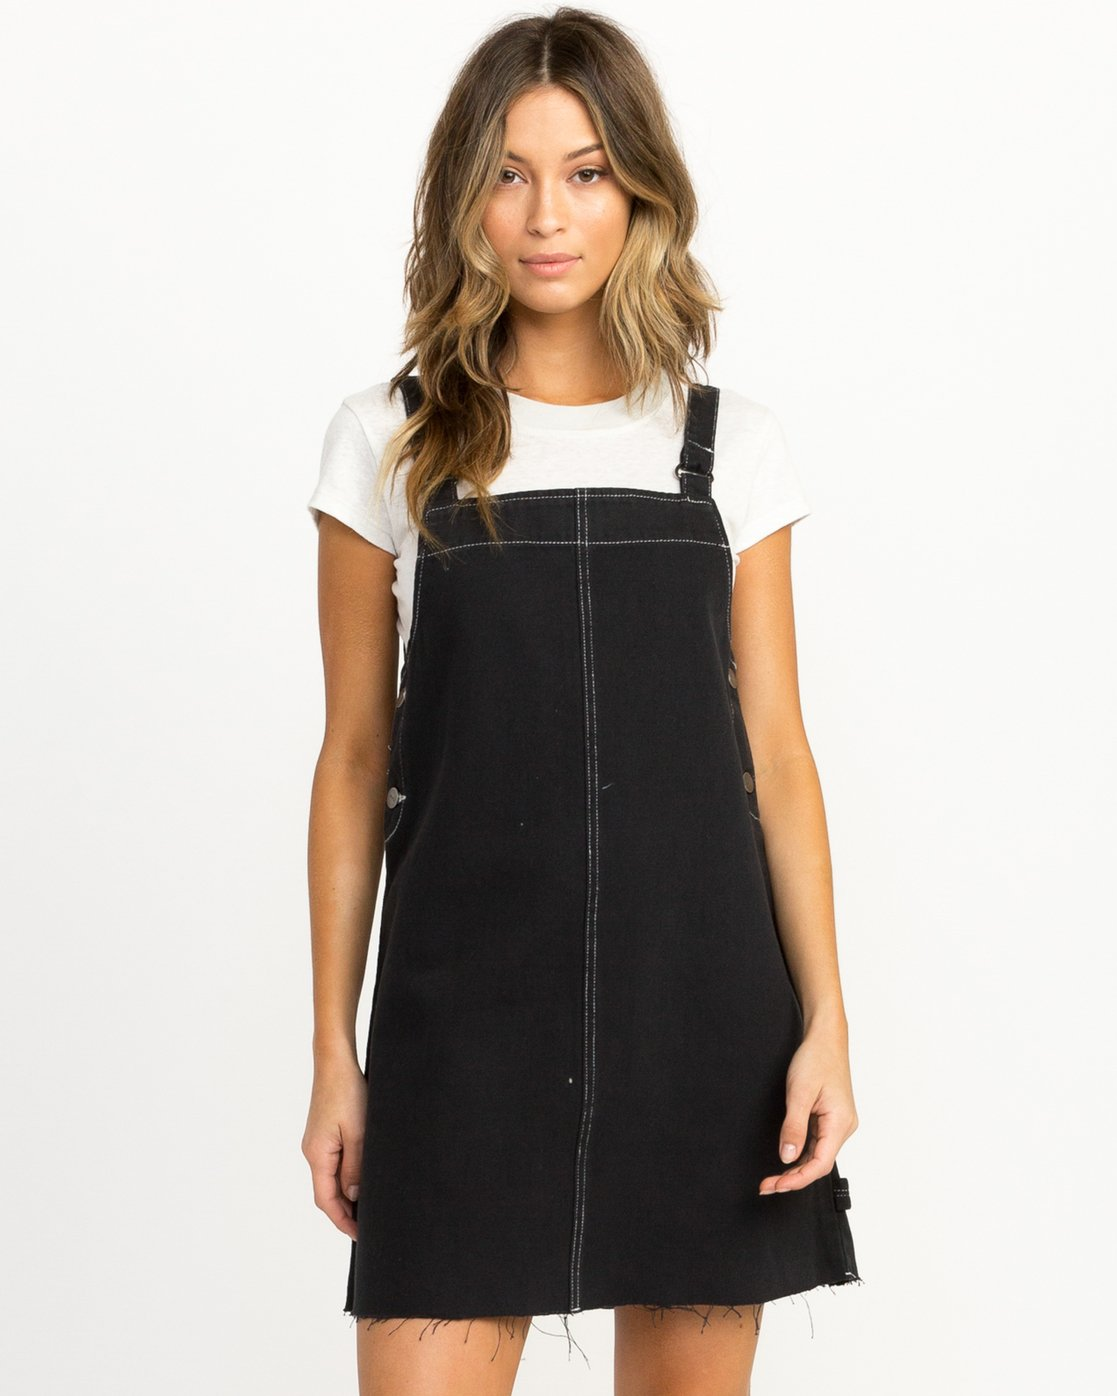 0 Neo Pinny Denim Overall Dress Black WD20QRNE RVCA